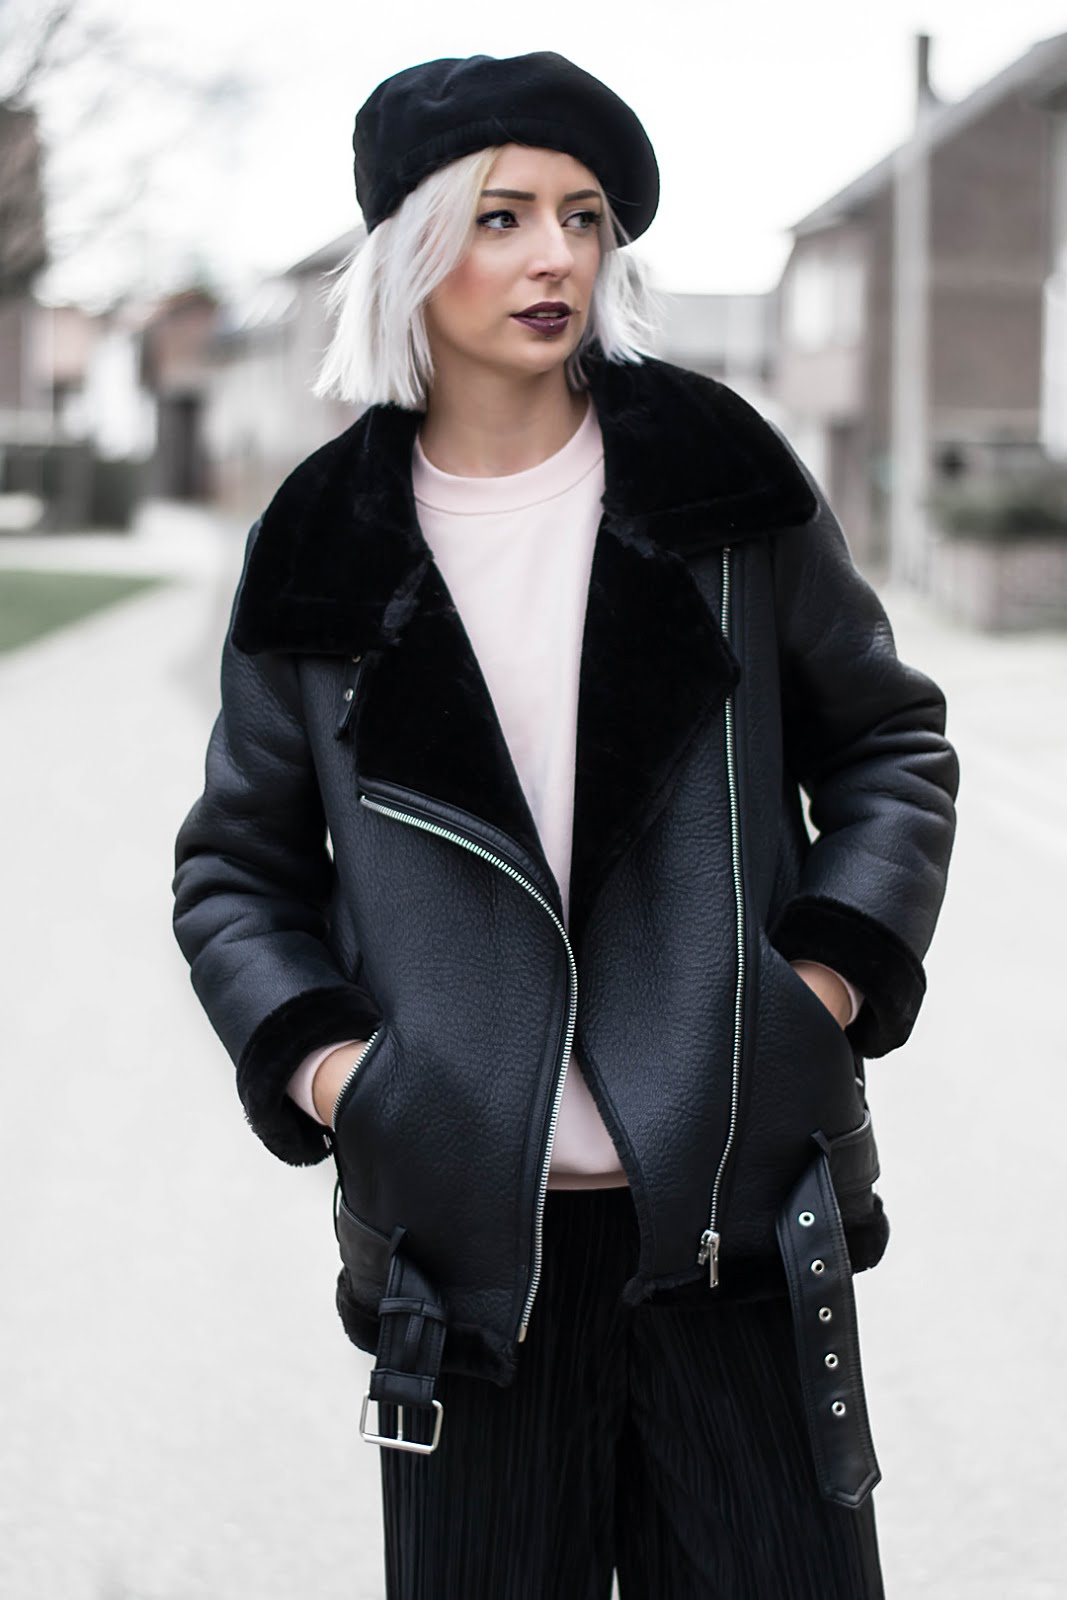 Chidora beret hat, silk, zara shearling coat, pastel pink sweatshirt, pleated culottes, all black